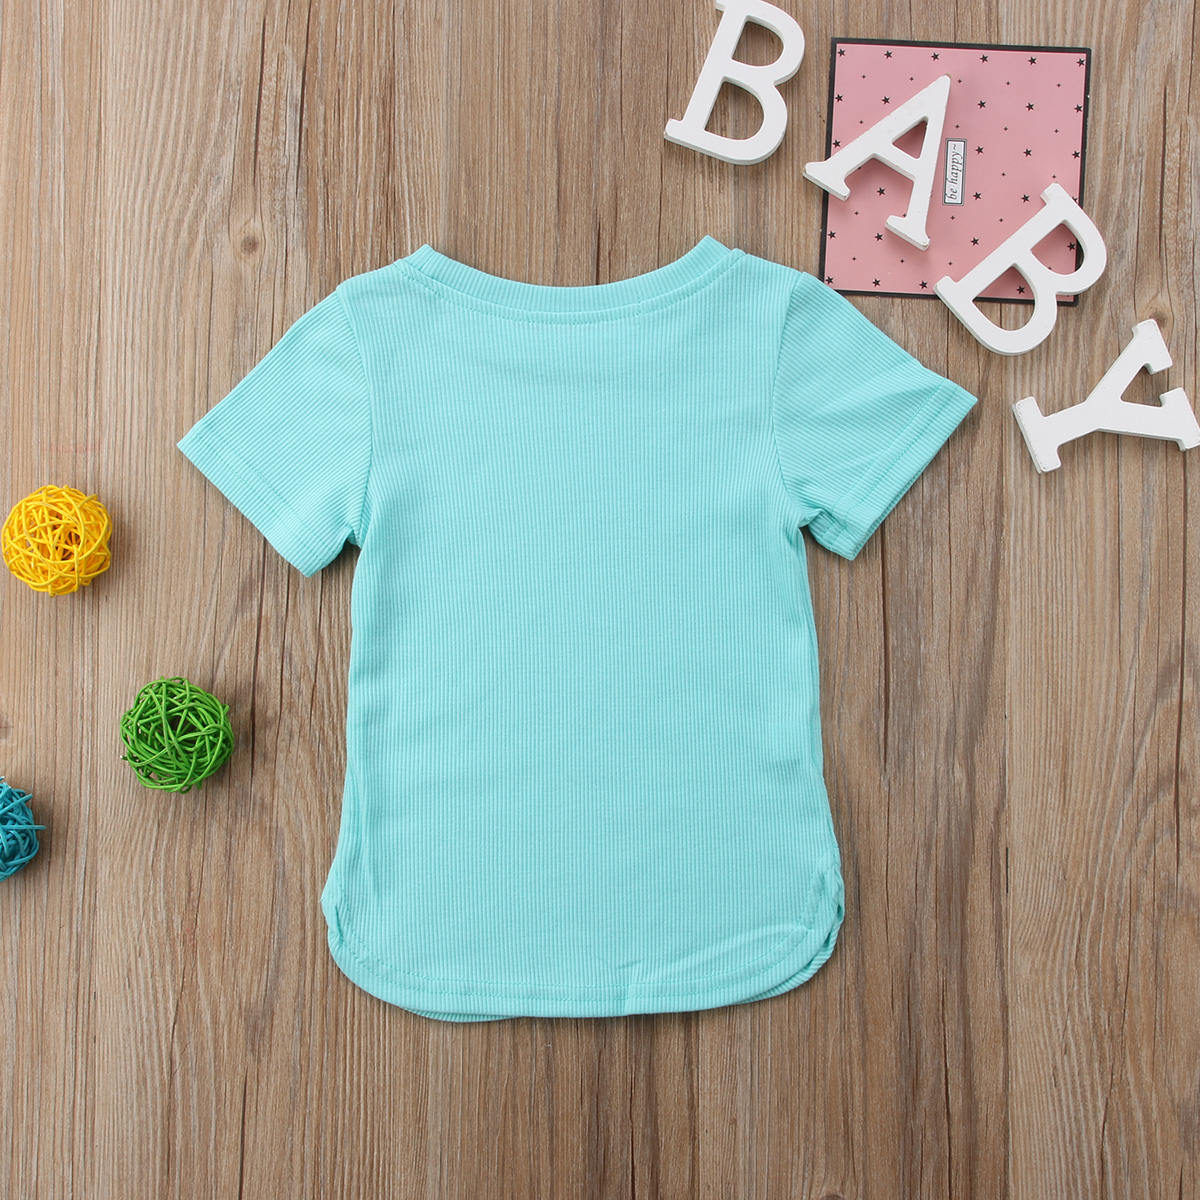 HTB1uBh1aDQspeRjt a0q6zPbFXad 2019 Summer Mom Daughter Short Sleeve T shirt Dress Family Matching Outfits Baby Kid Women Party Dresses Cotton Clothes Dropship